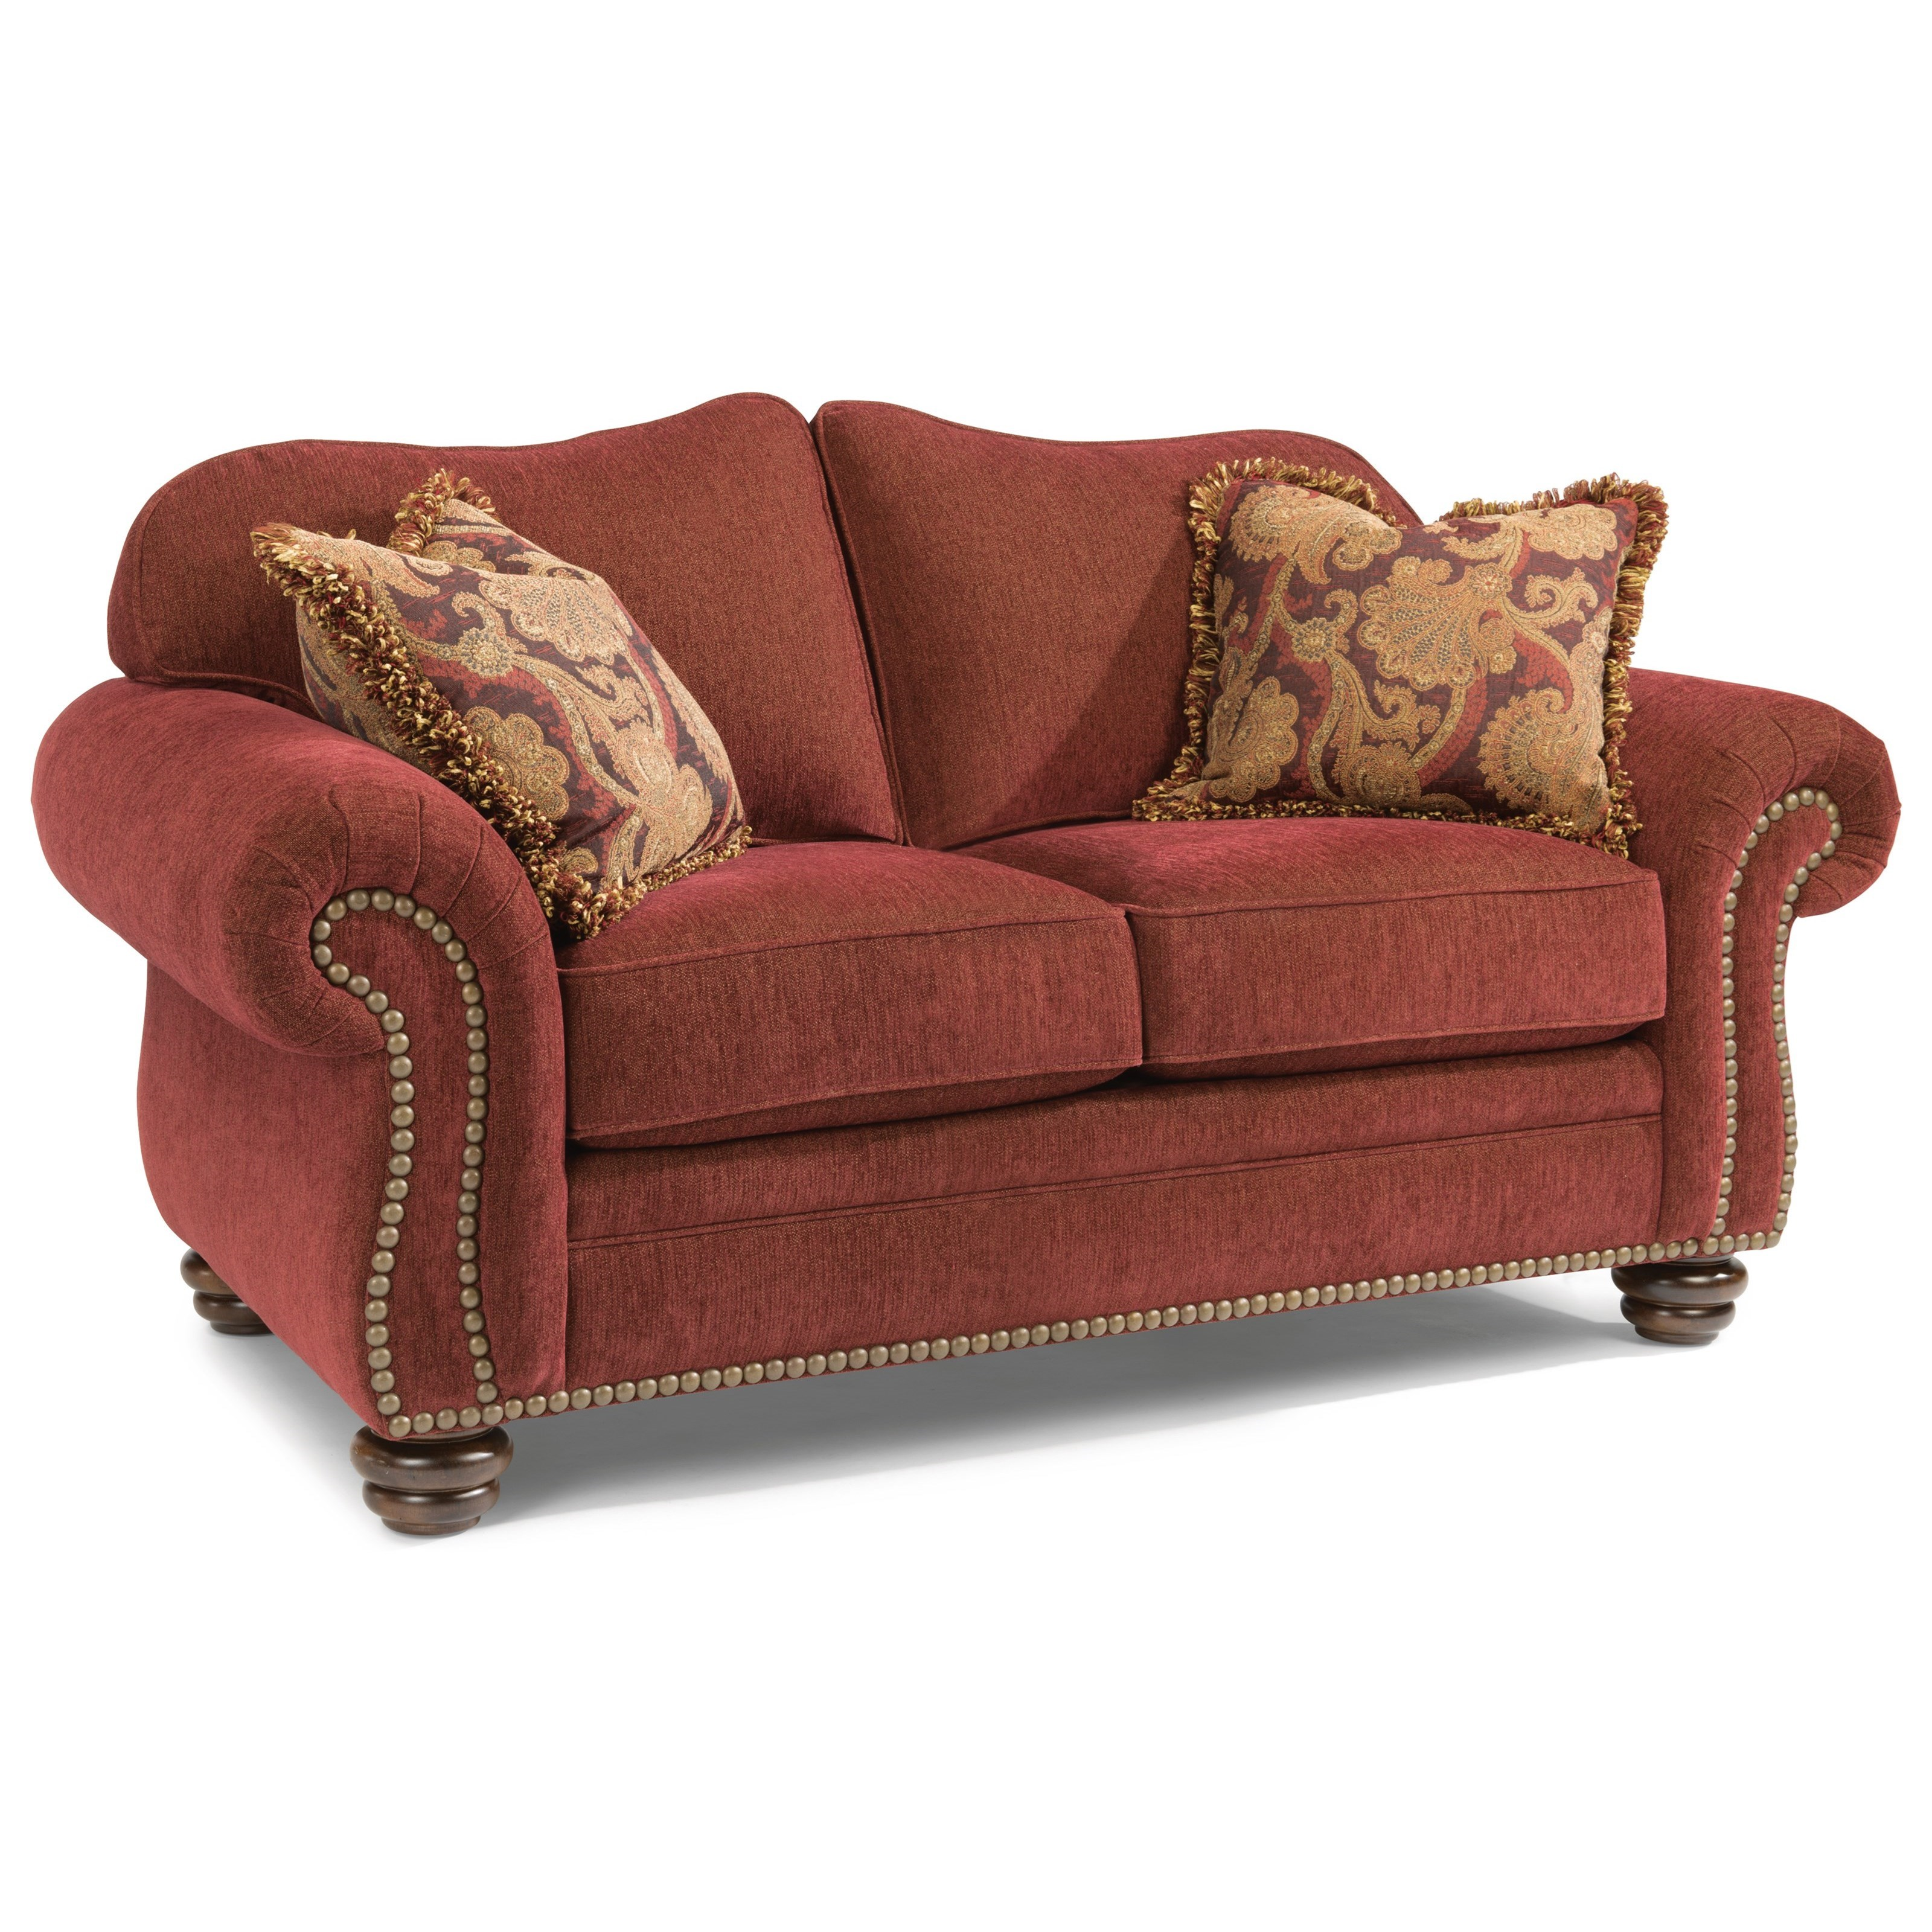 flexsteel bexley traditional love seat with nailhead trim boulevard home furnishings love seats. Black Bedroom Furniture Sets. Home Design Ideas